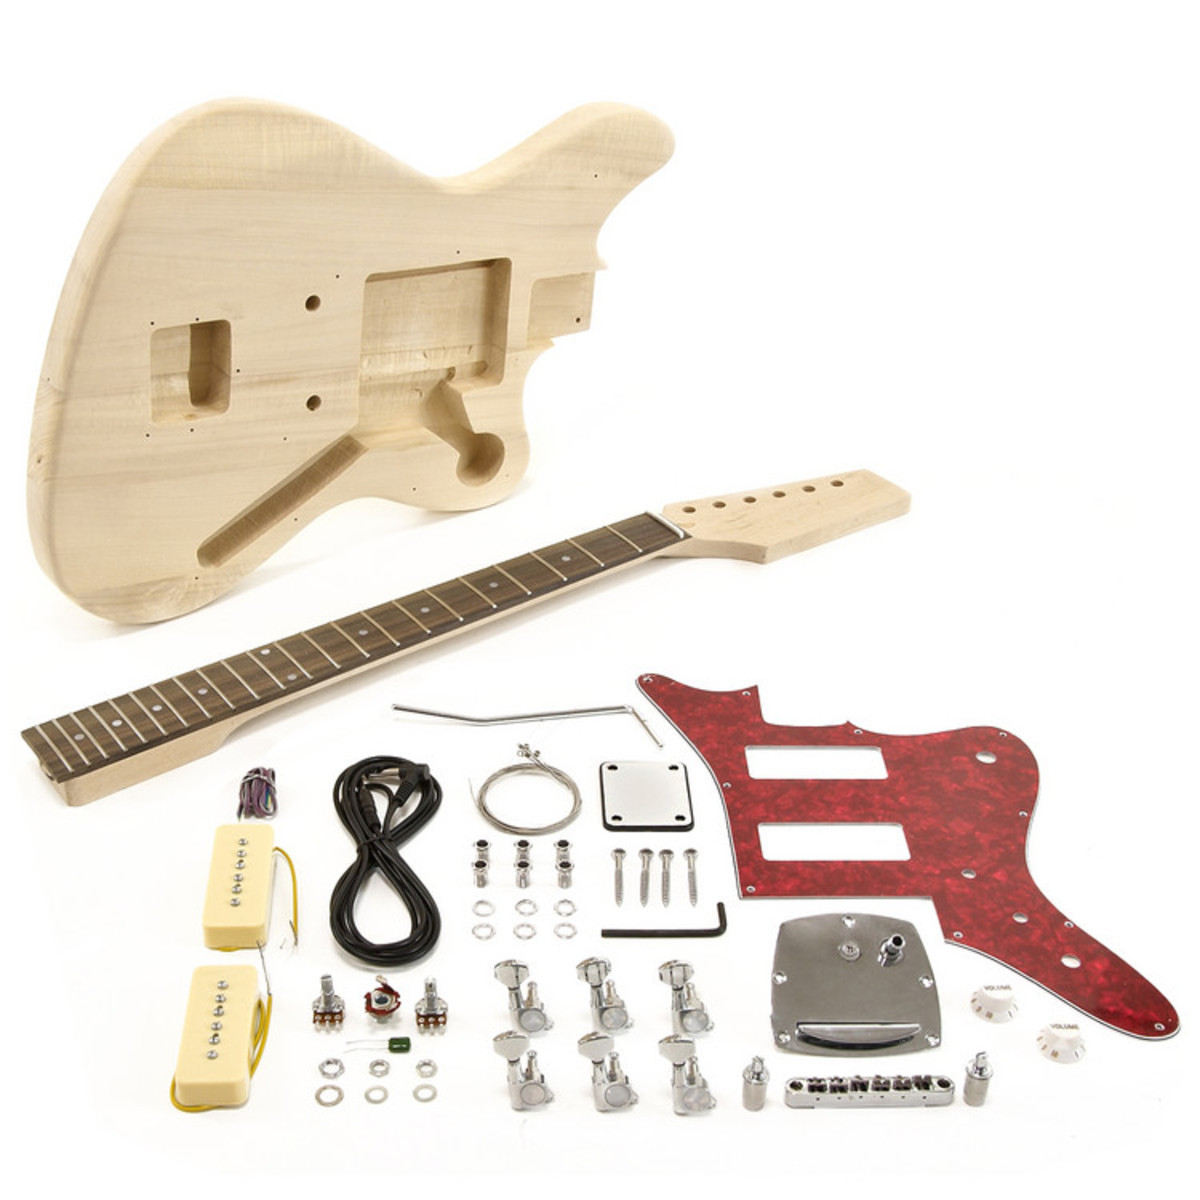 Best ideas about Cheap DIY Guitar Kits . Save or Pin Seattle Jazz Electric Guitar DIY Kit at Gear4music Now.